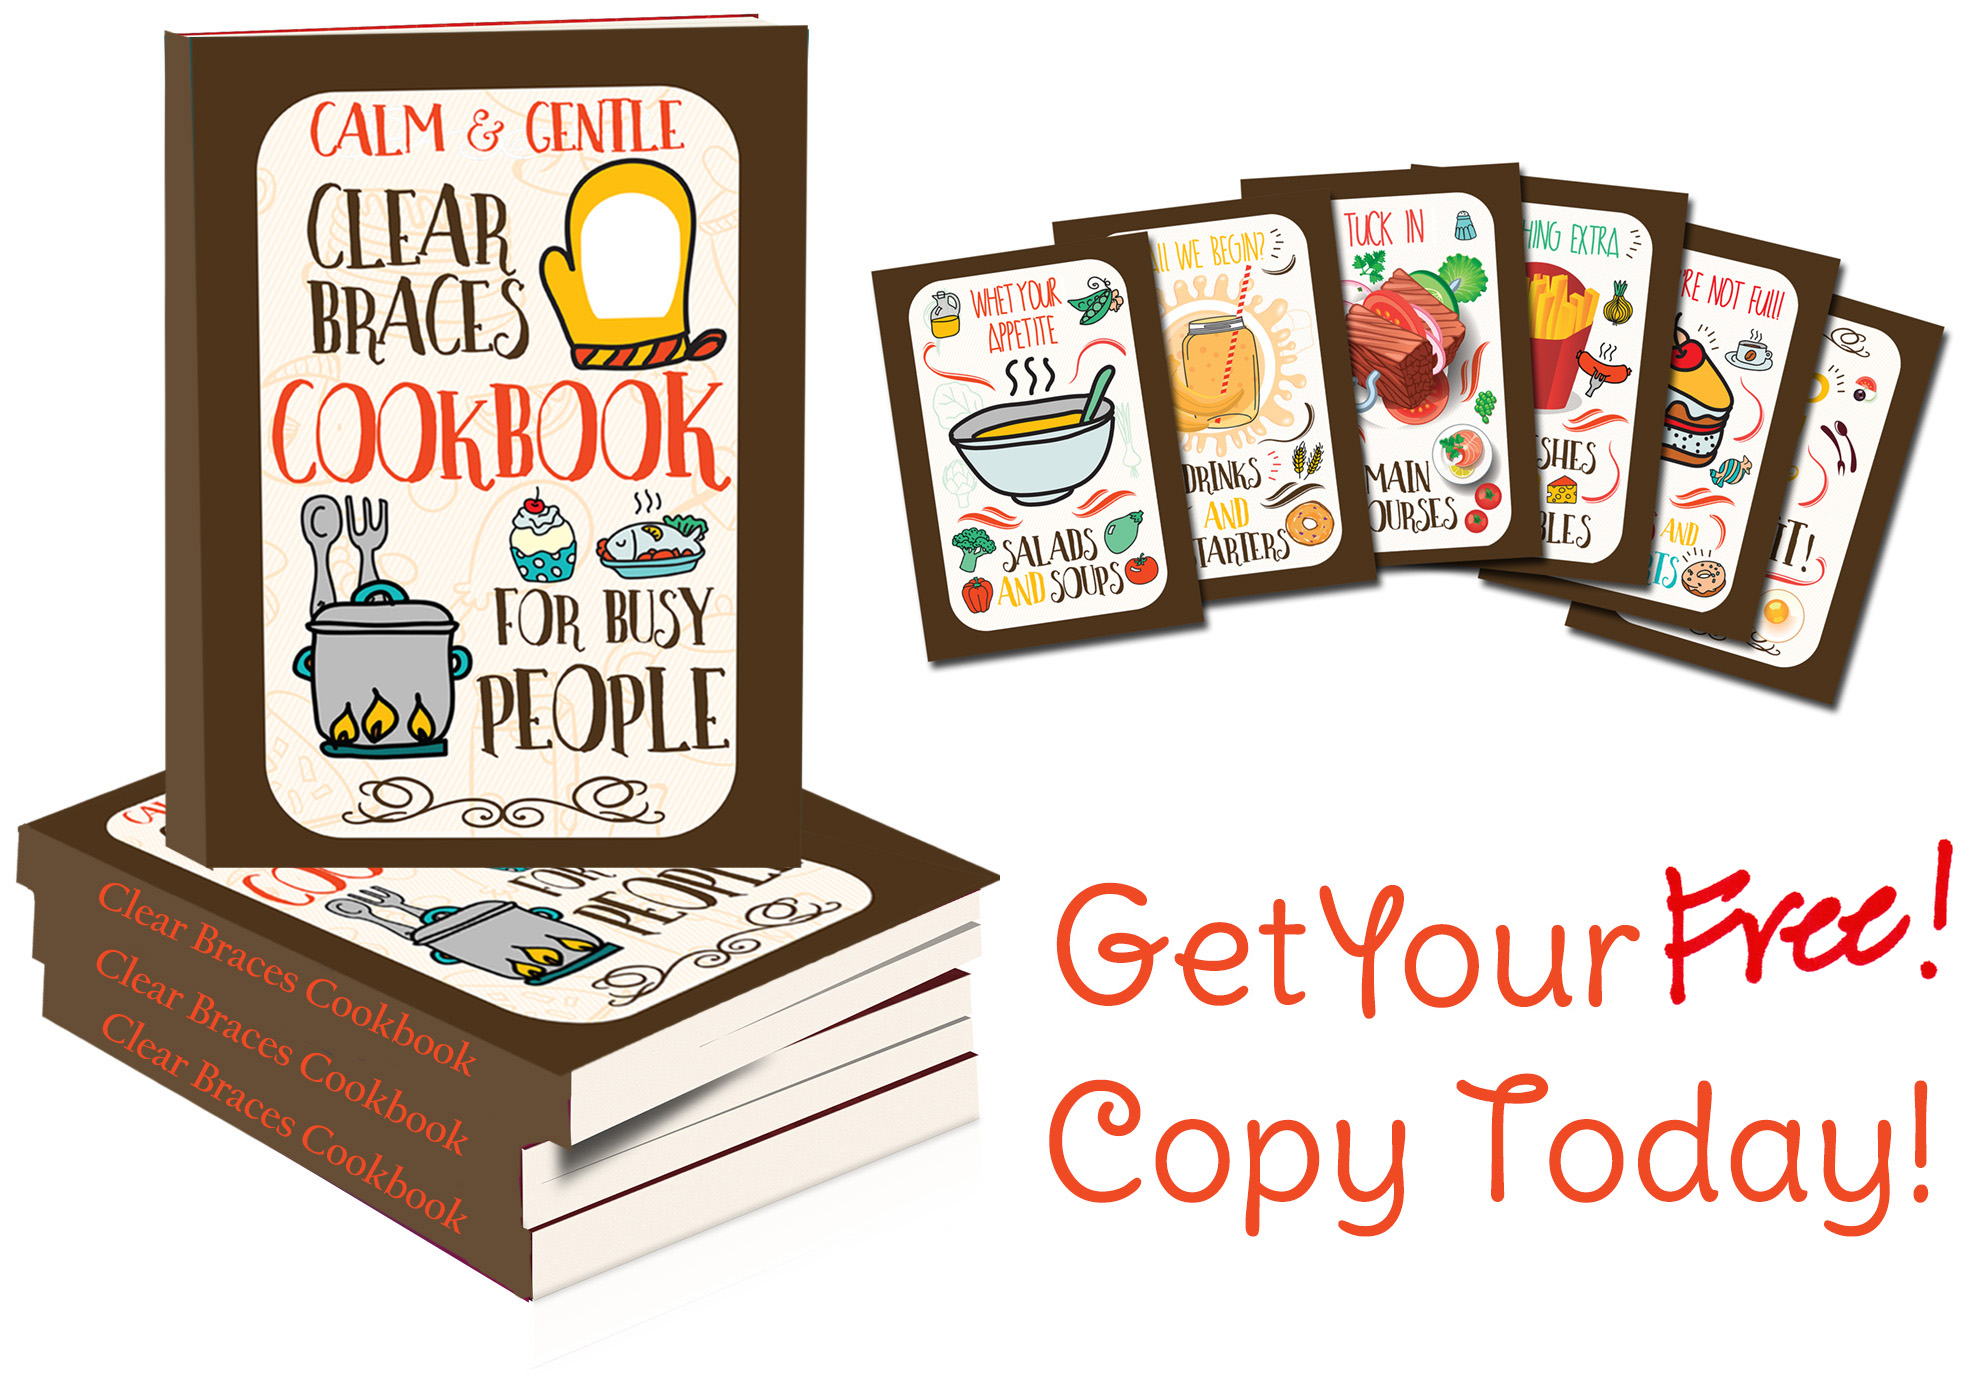 "Introducing The Calm & Gentle ""Clear Braces Cookbook"